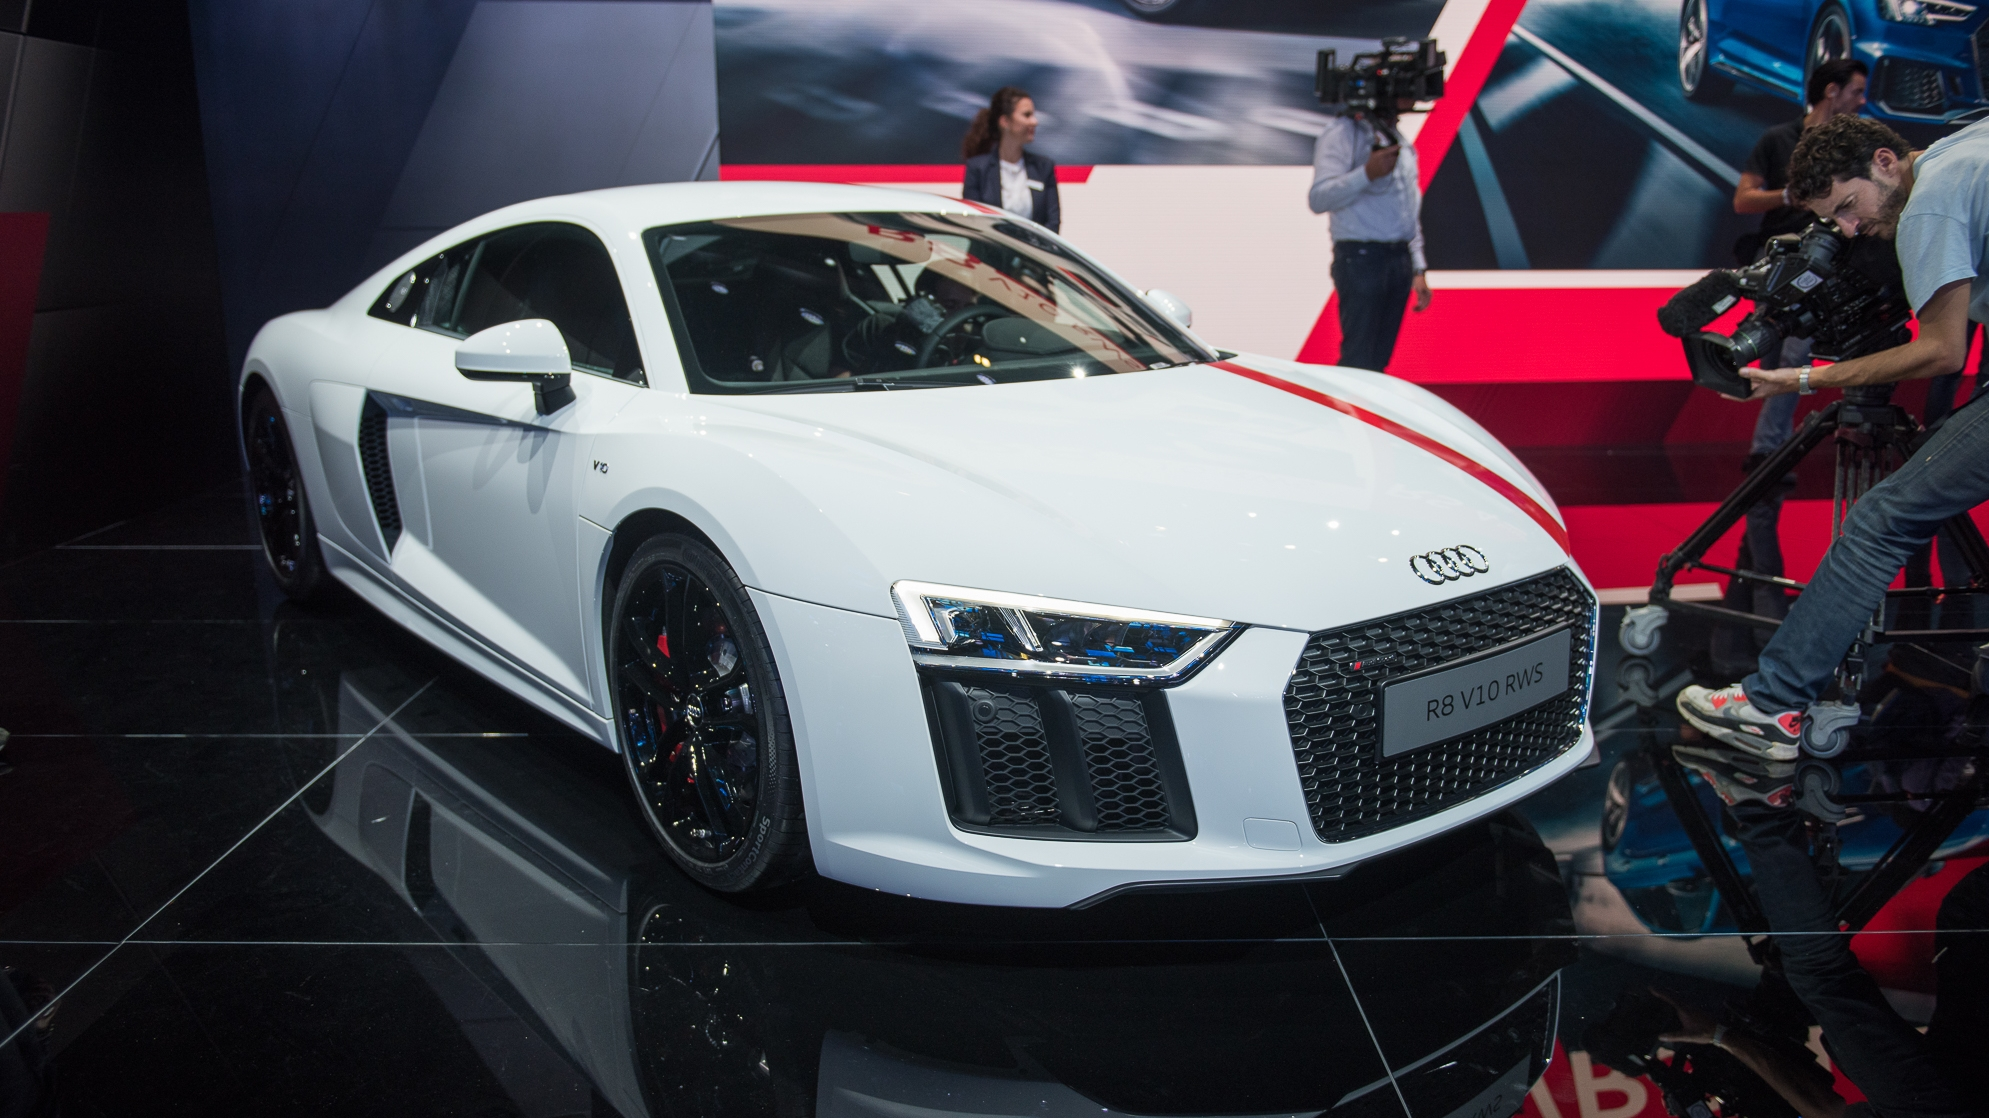 Audi S1 2018 >> 2018 Audi R8 V10 RWS Pictures, Photos, Wallpapers. | Top Speed